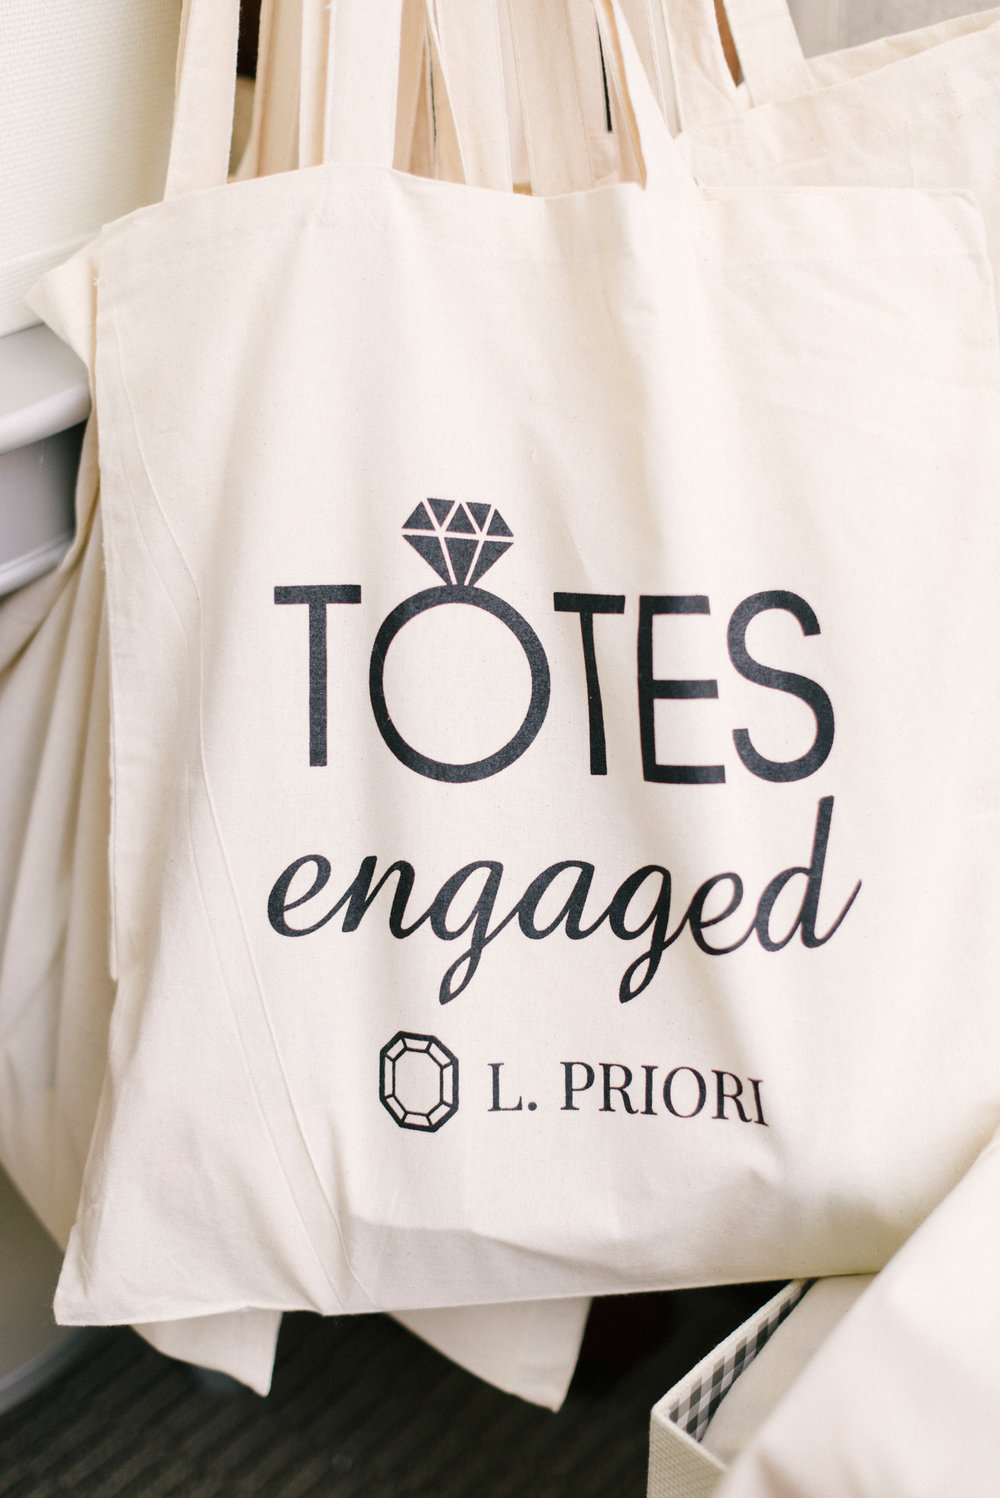 Totes Engaged Bag from L. Priori Jewelry.jpg